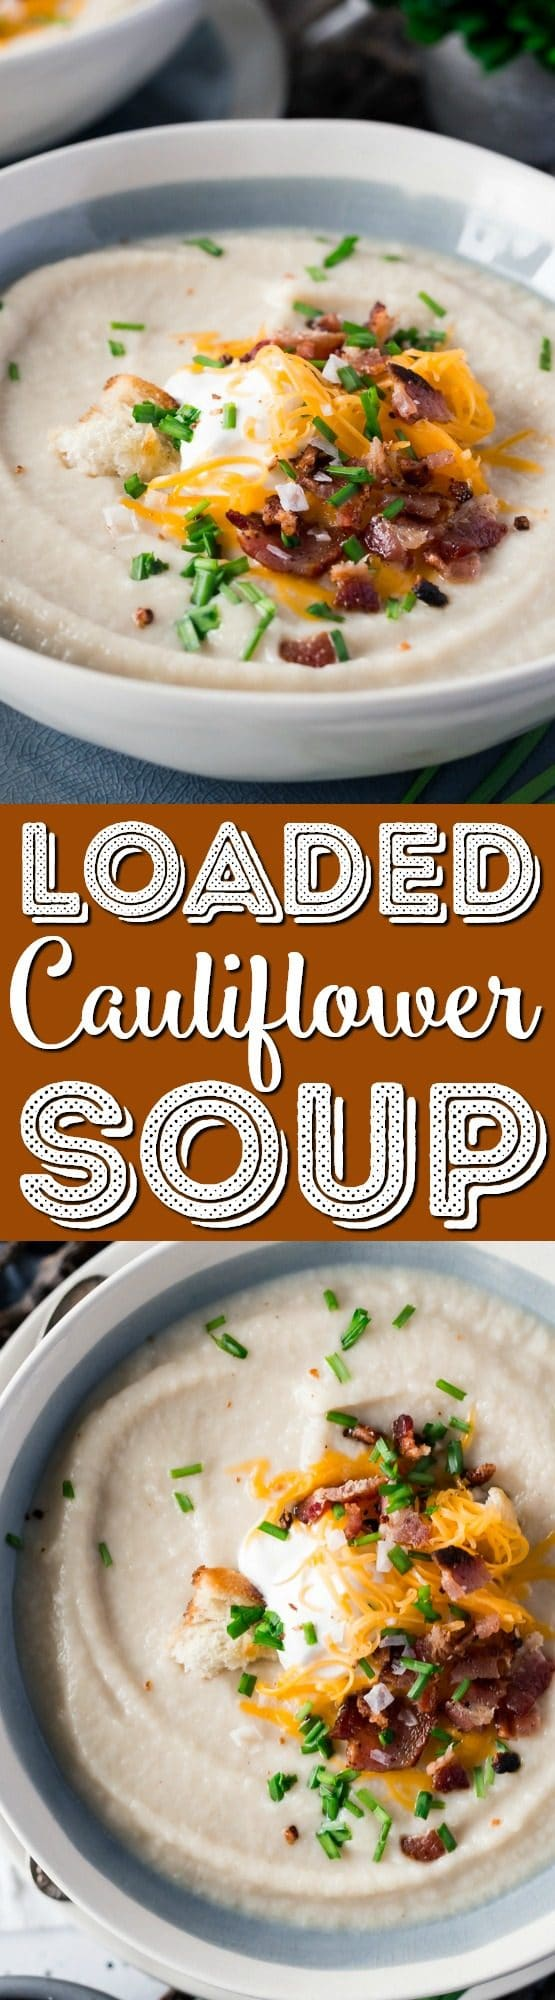 This Loaded Cauliflower Soup is creamy and delicious! It's made with fresh cauliflower, sweet onion, and topped with crispy bacon, cheddar cheese, and sour cream for a healthy meal option.